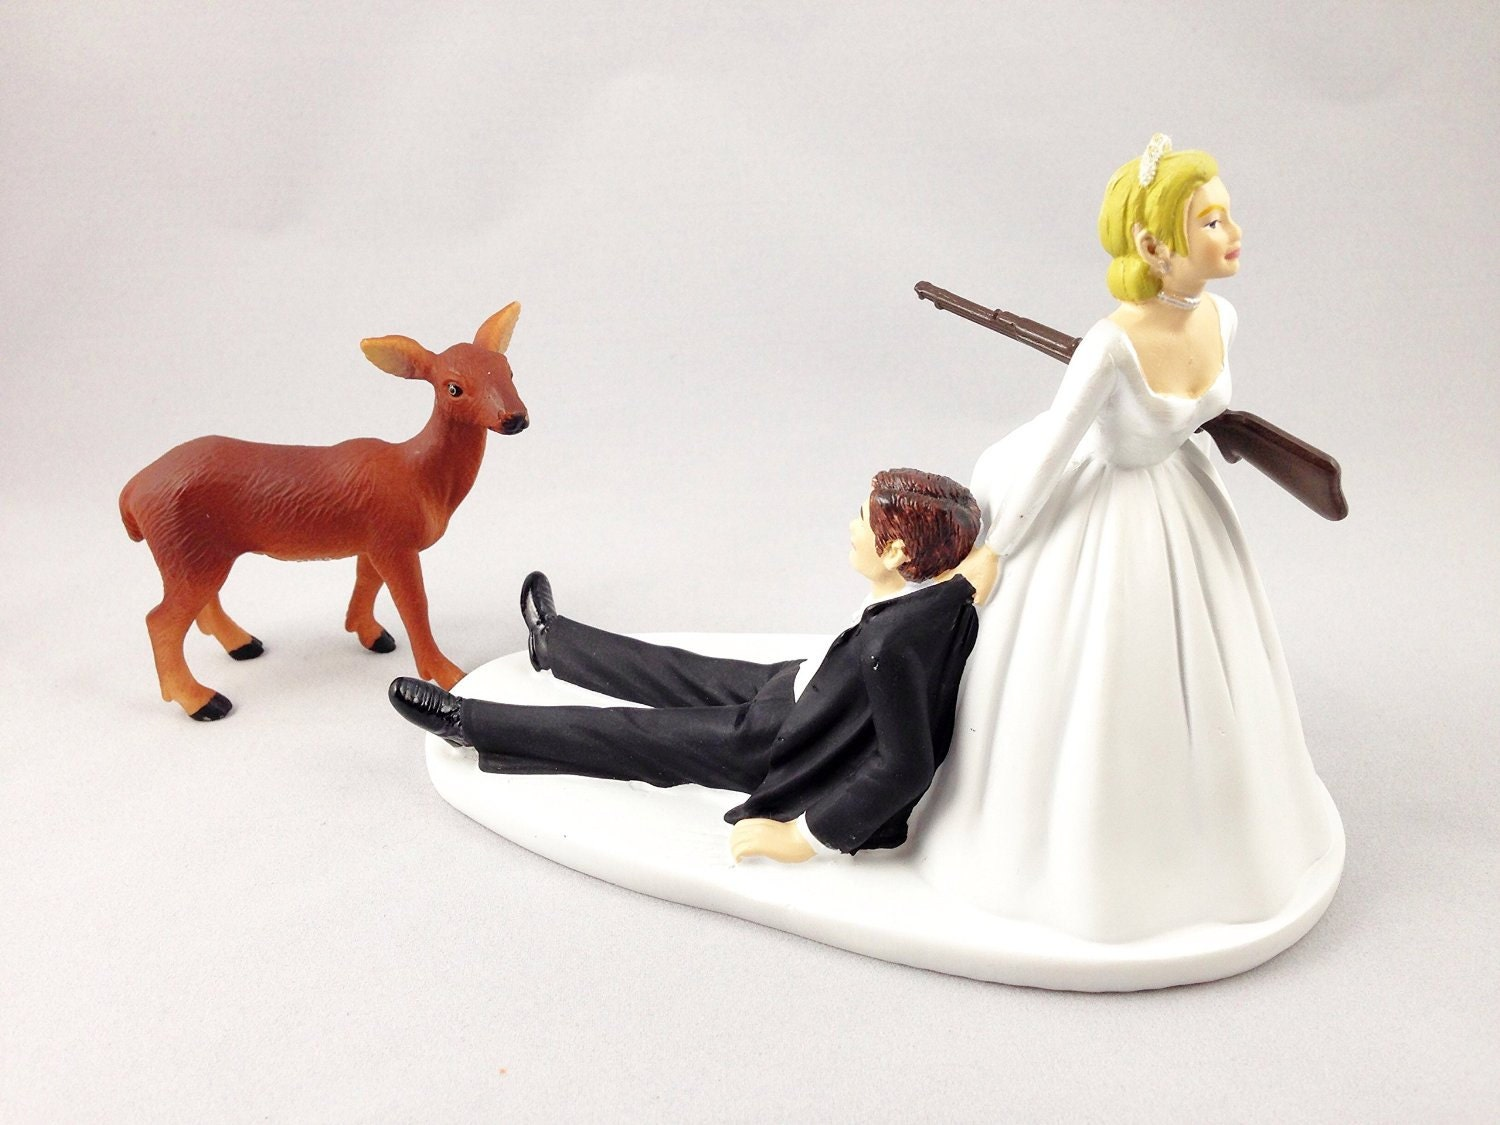 Funny Hunting Wedding Cake Topper Deer Hunting Groom Being